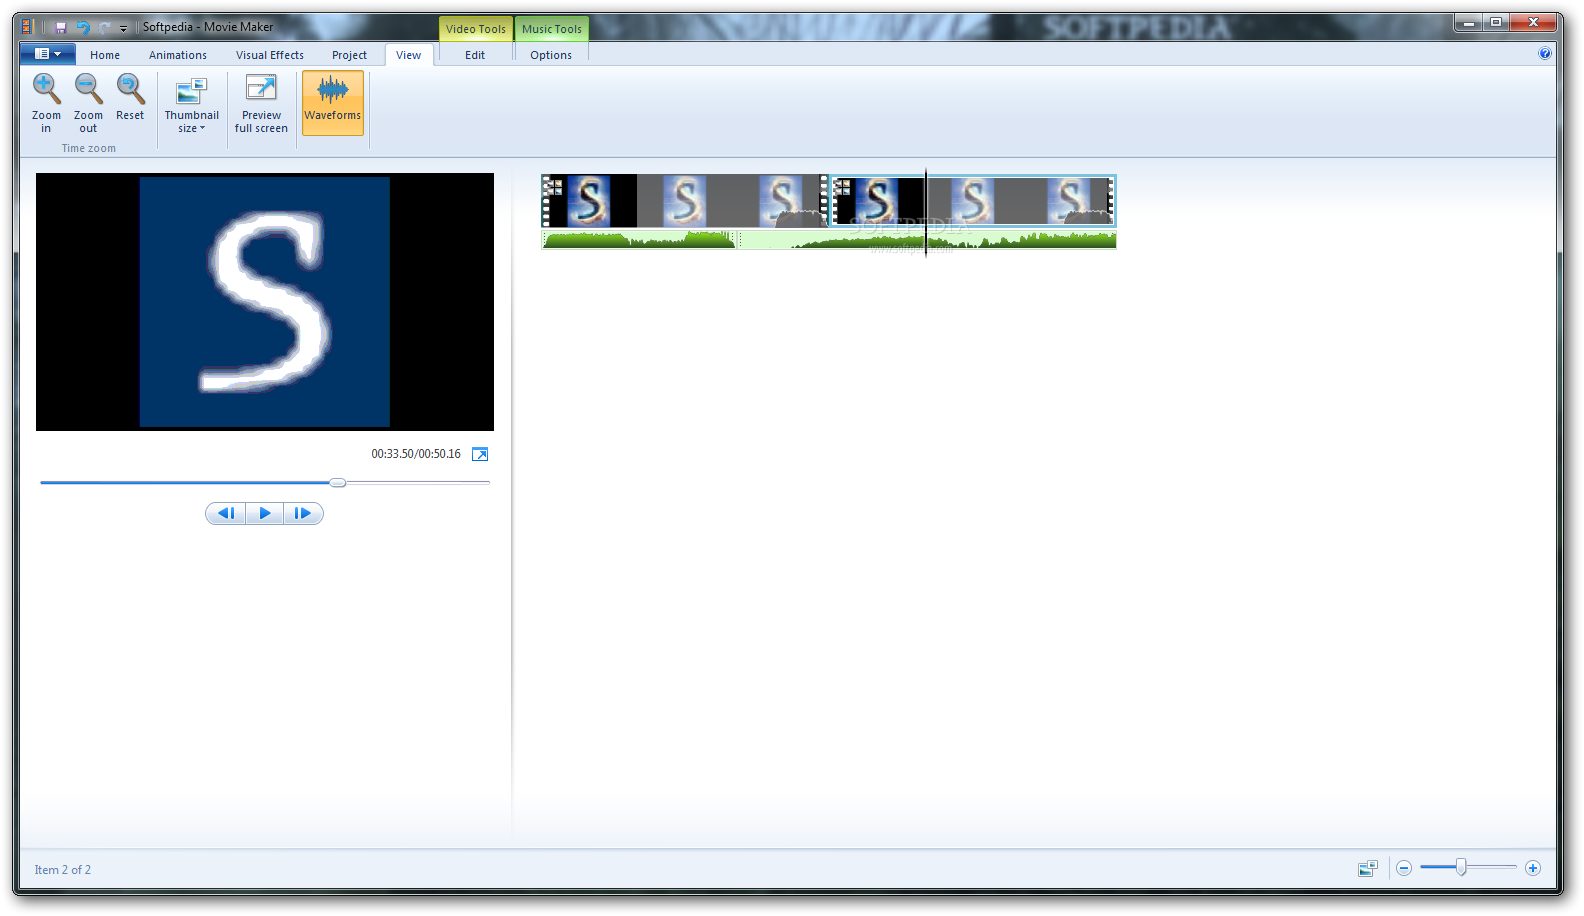 Windows Live Movie Maker screenshot 6